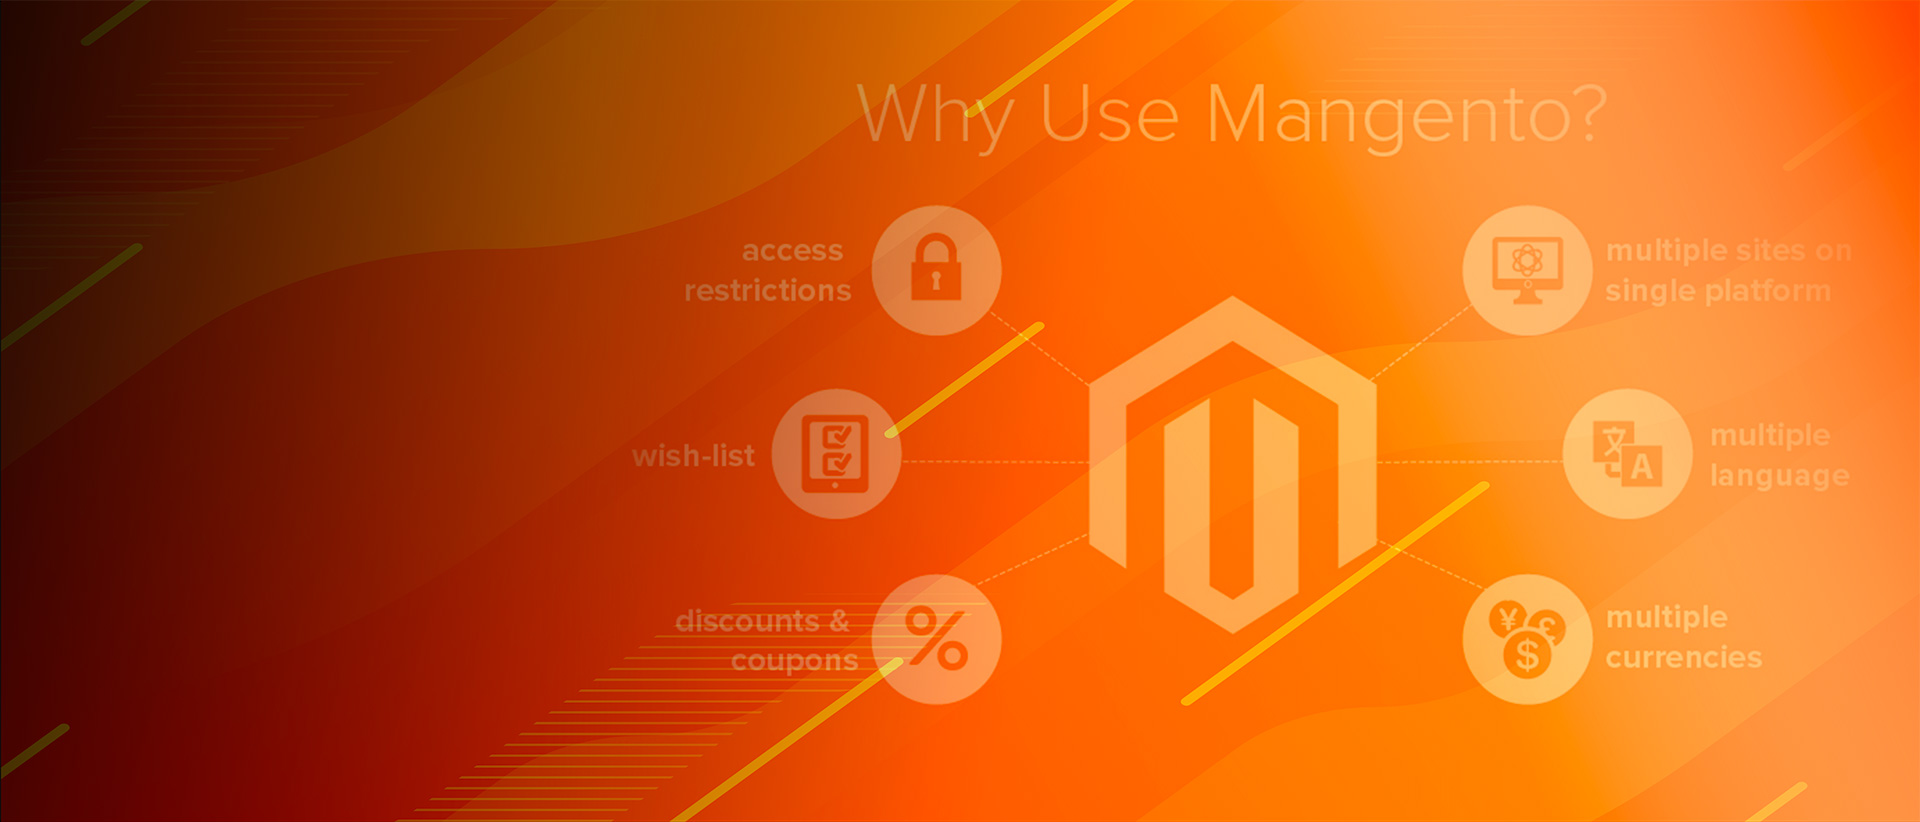 Magento Ecommerce Services